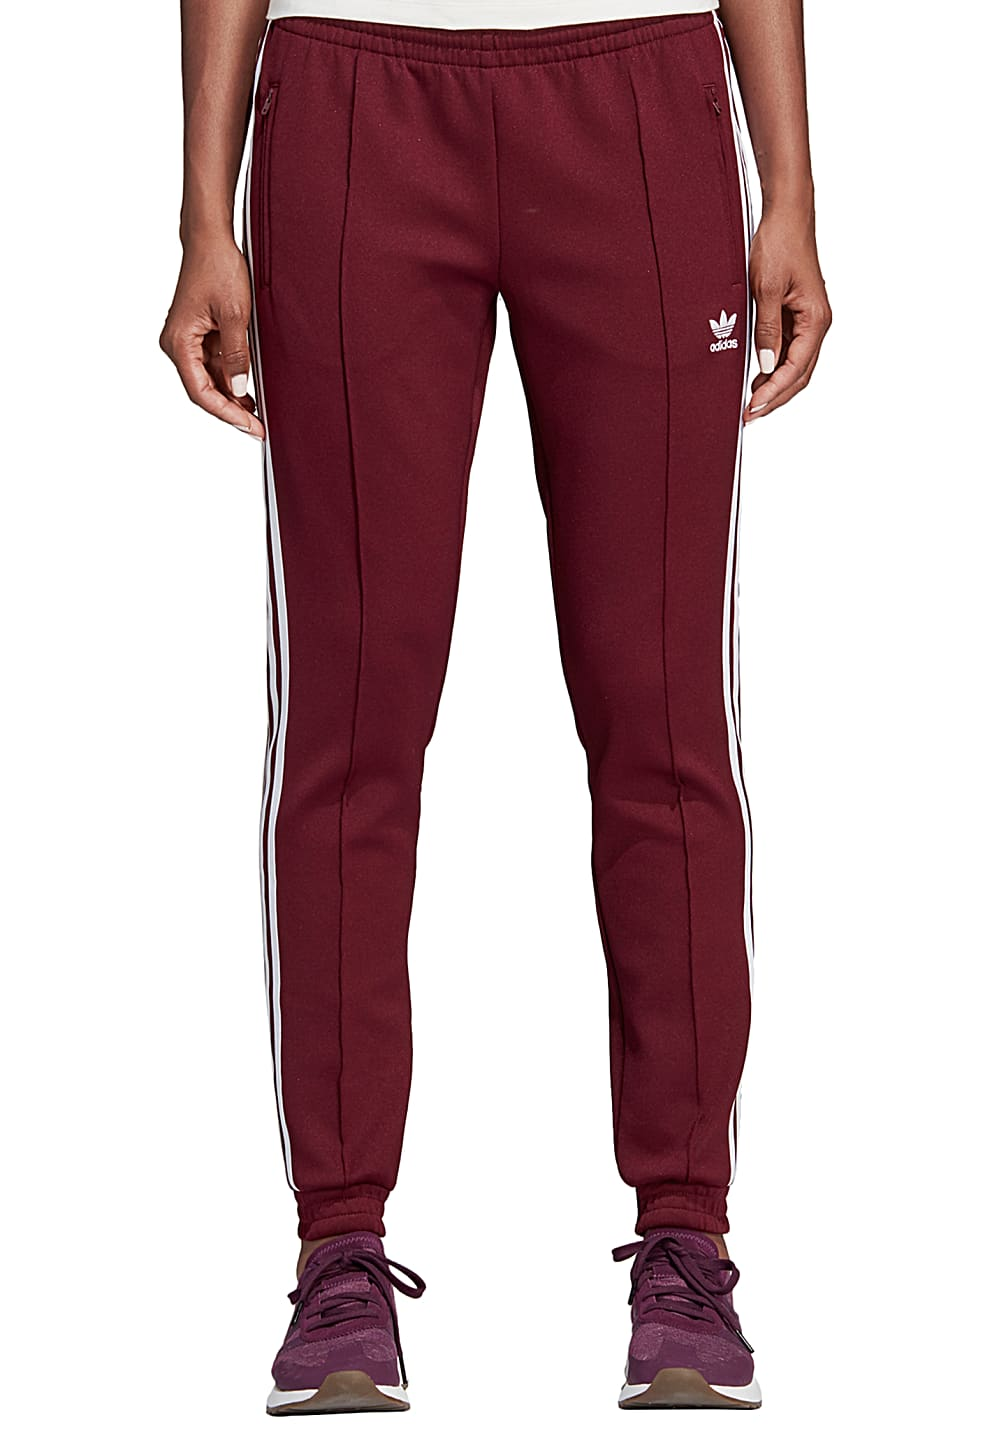 ADIDAS ORIGINALS Colorado SST - Trainingsbroek voor Dames - Rood